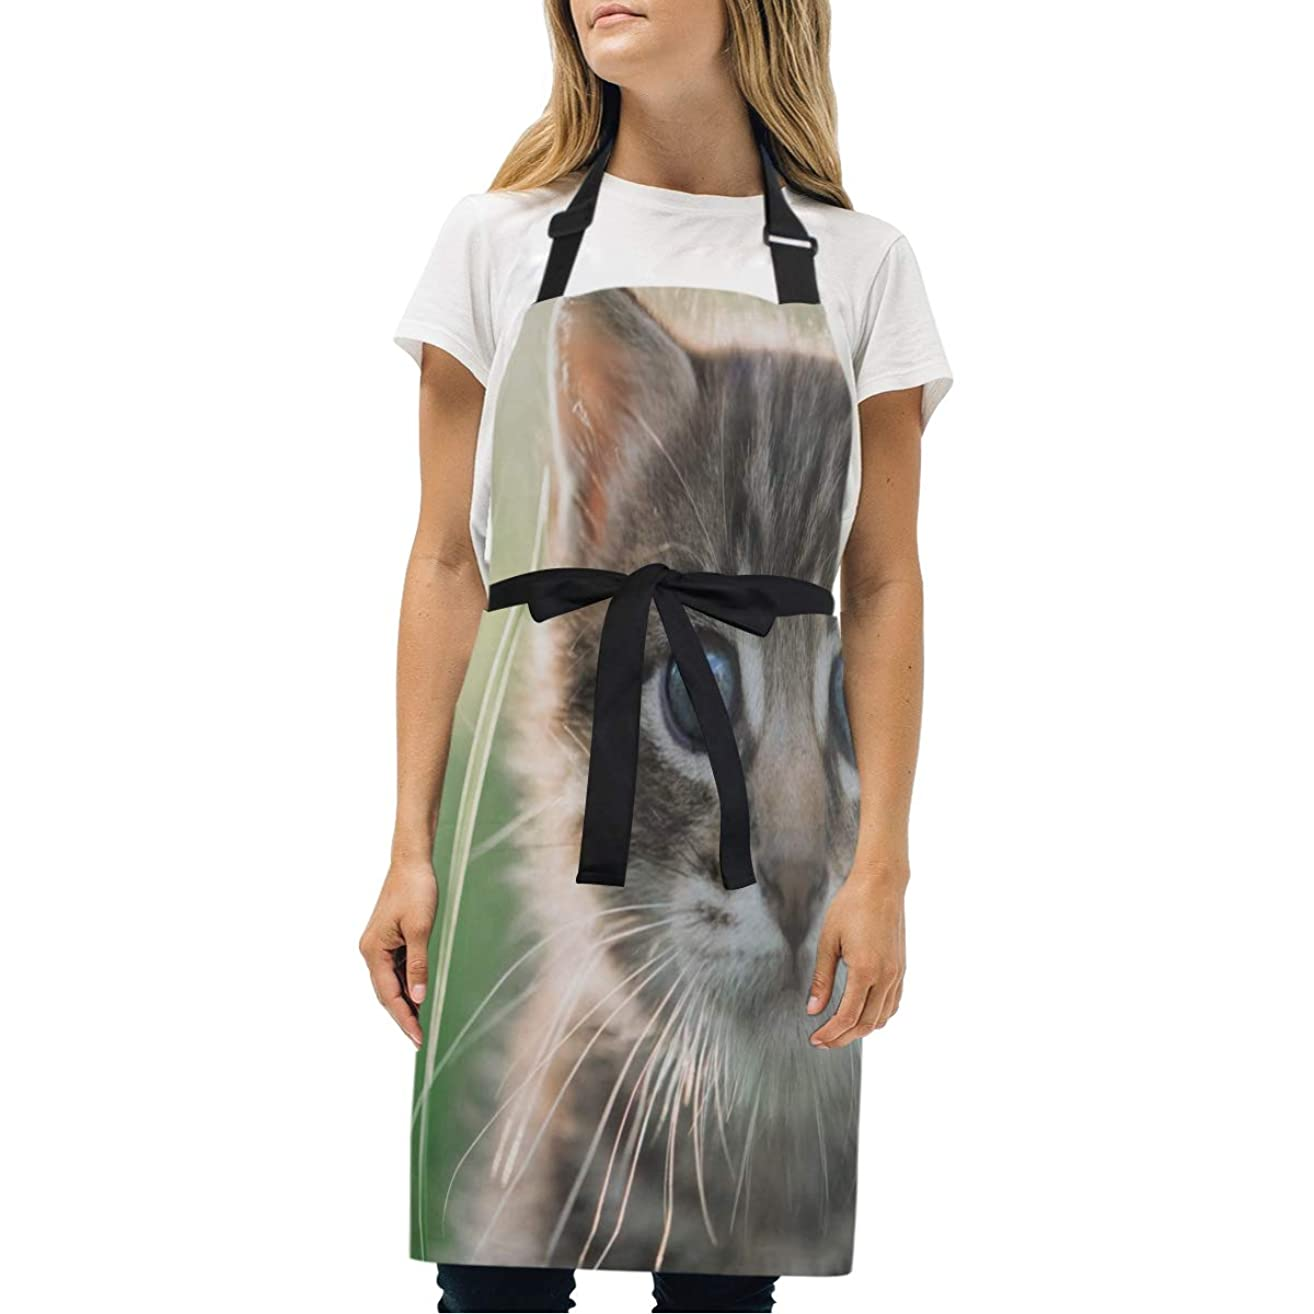 HJudge Womens Aprons Signs to Look Out for Kitten Kitchen Bib Aprons with Pockets Adjustable Buckle on Neck